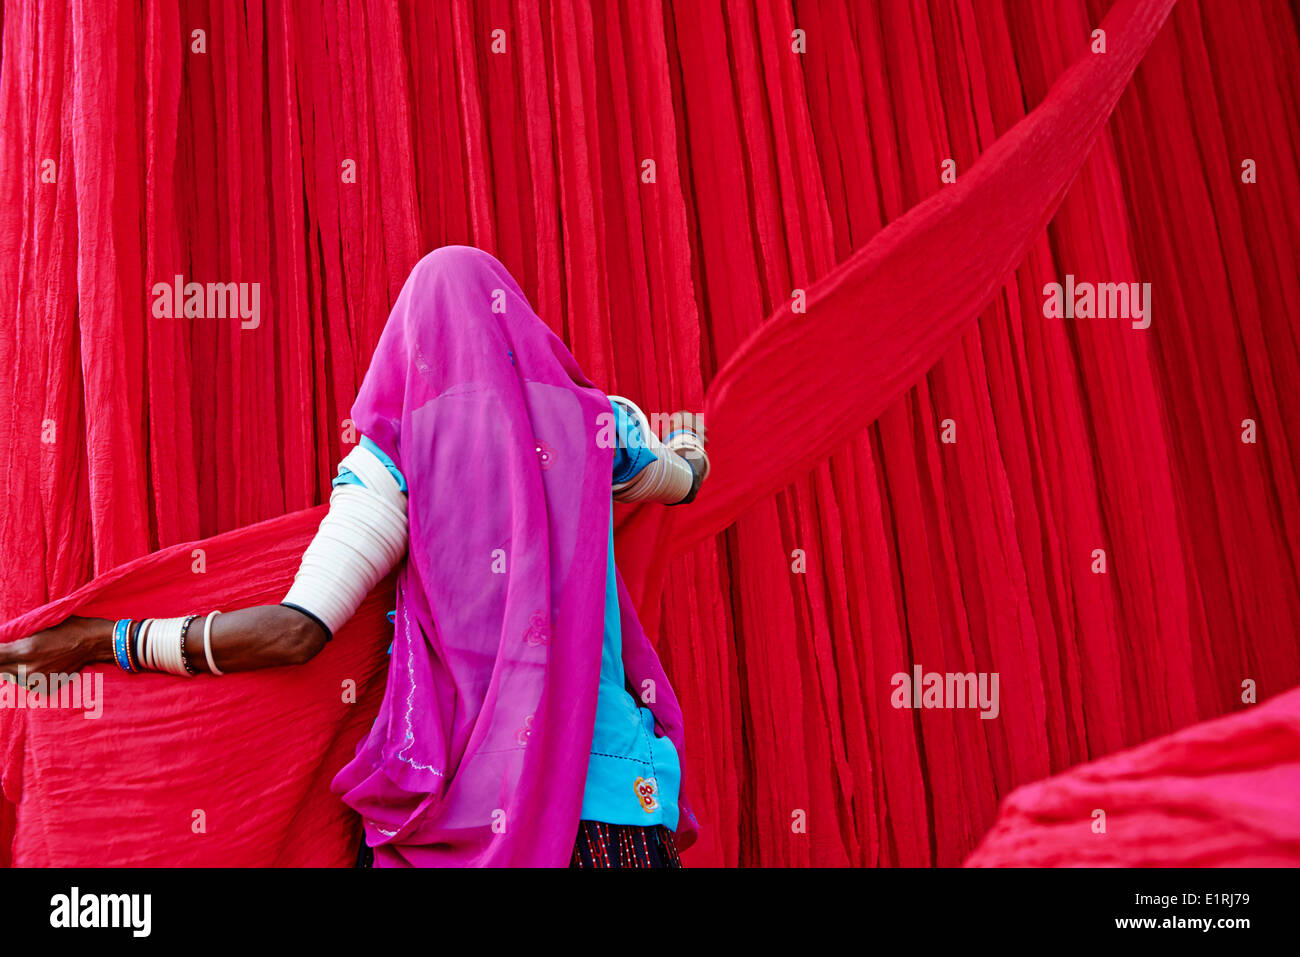 India, Rajasthan, sari garment factory - Stock Image